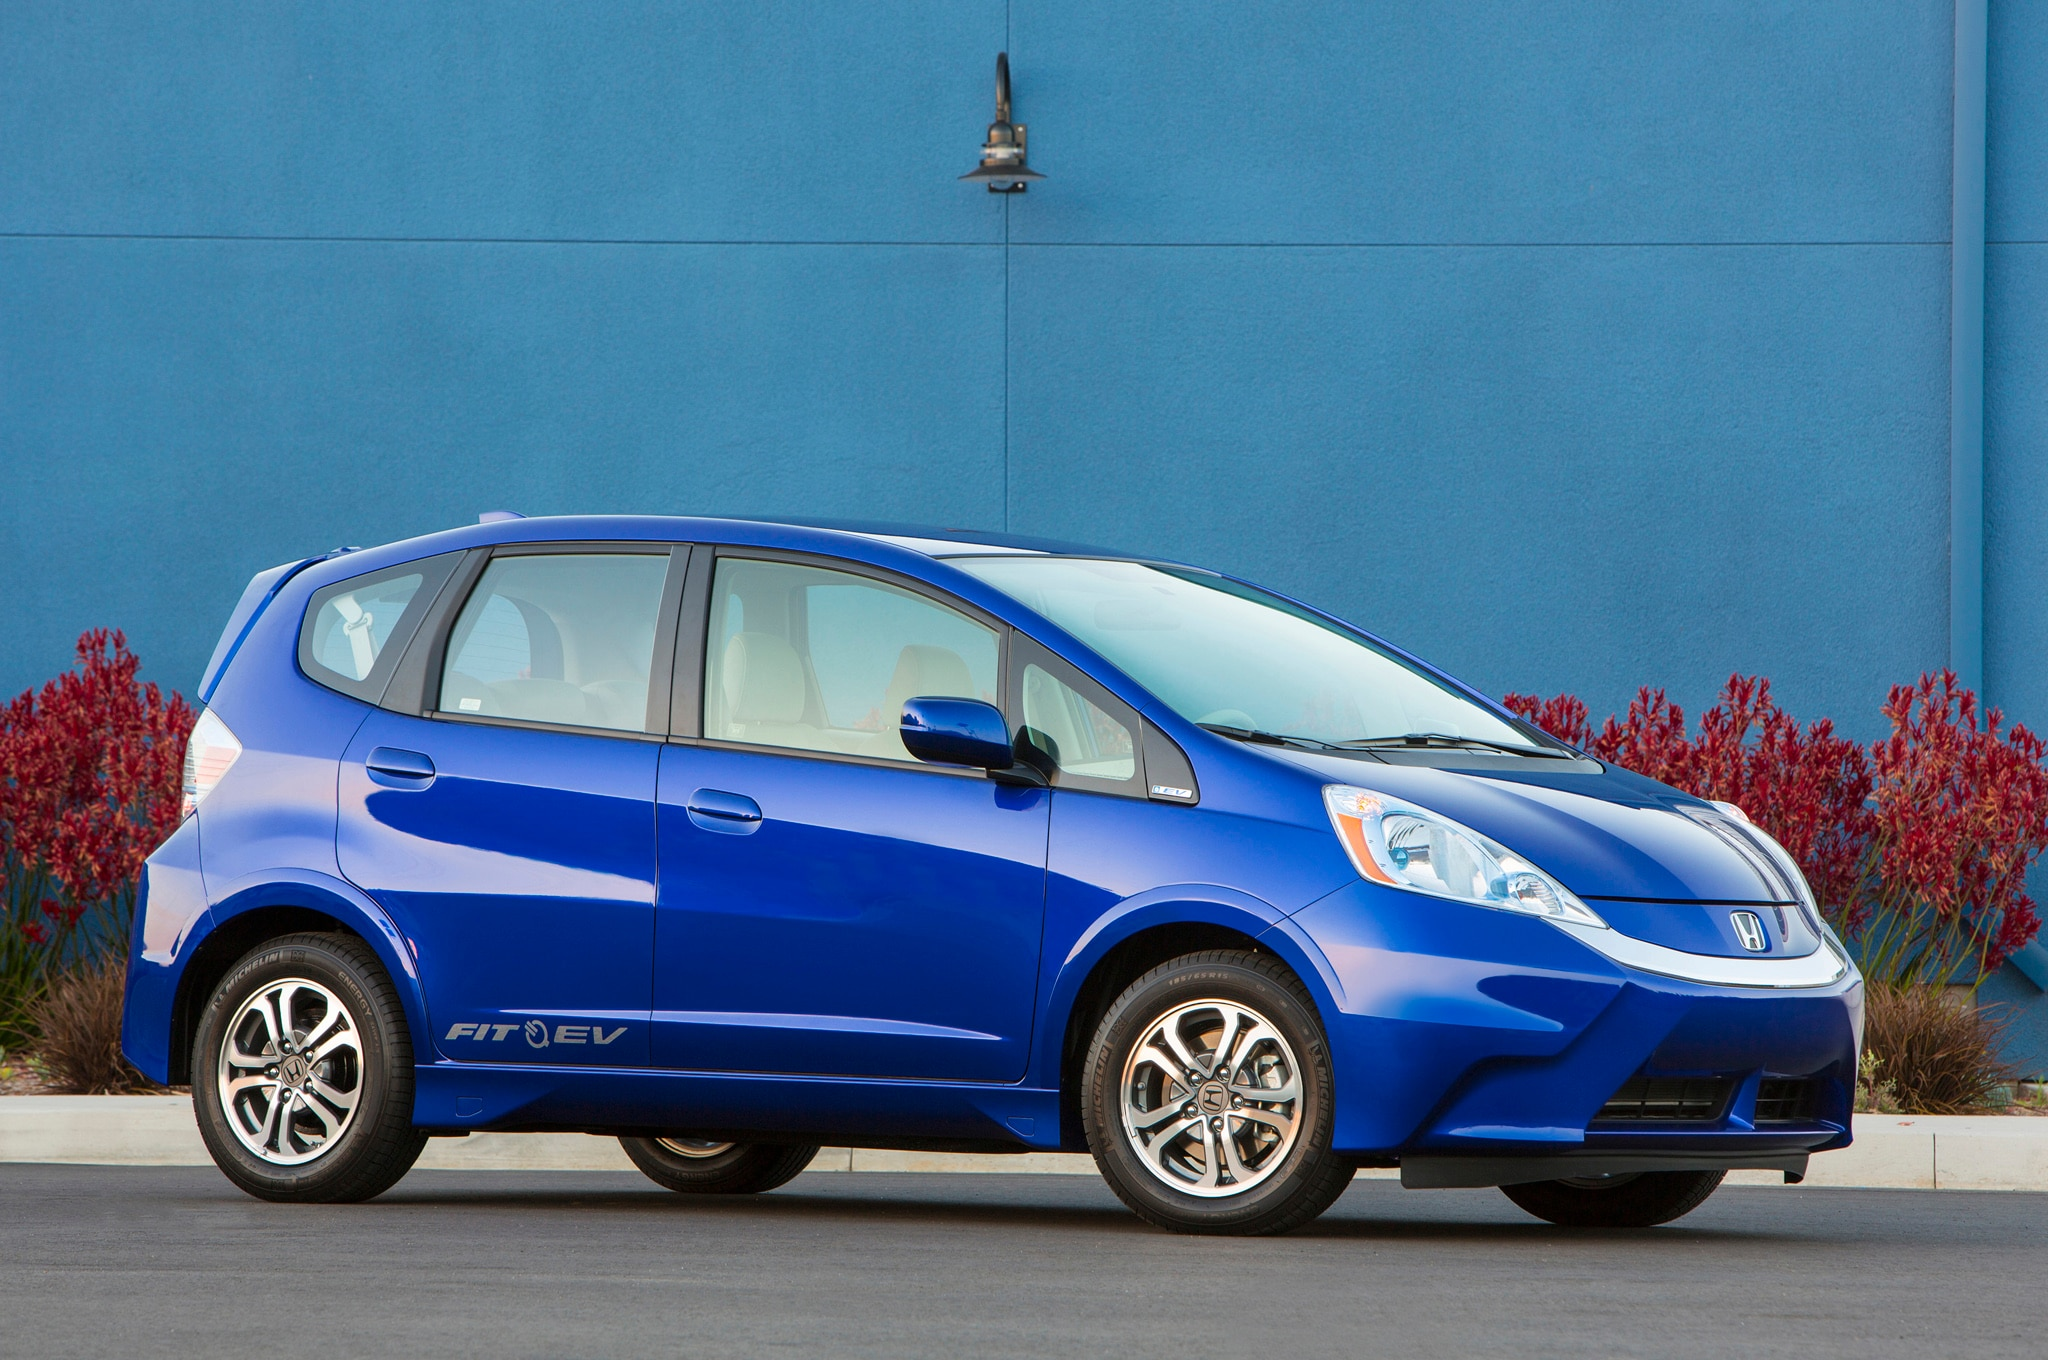 Honda fit ev leases extended price dropped again for Honda fit ev